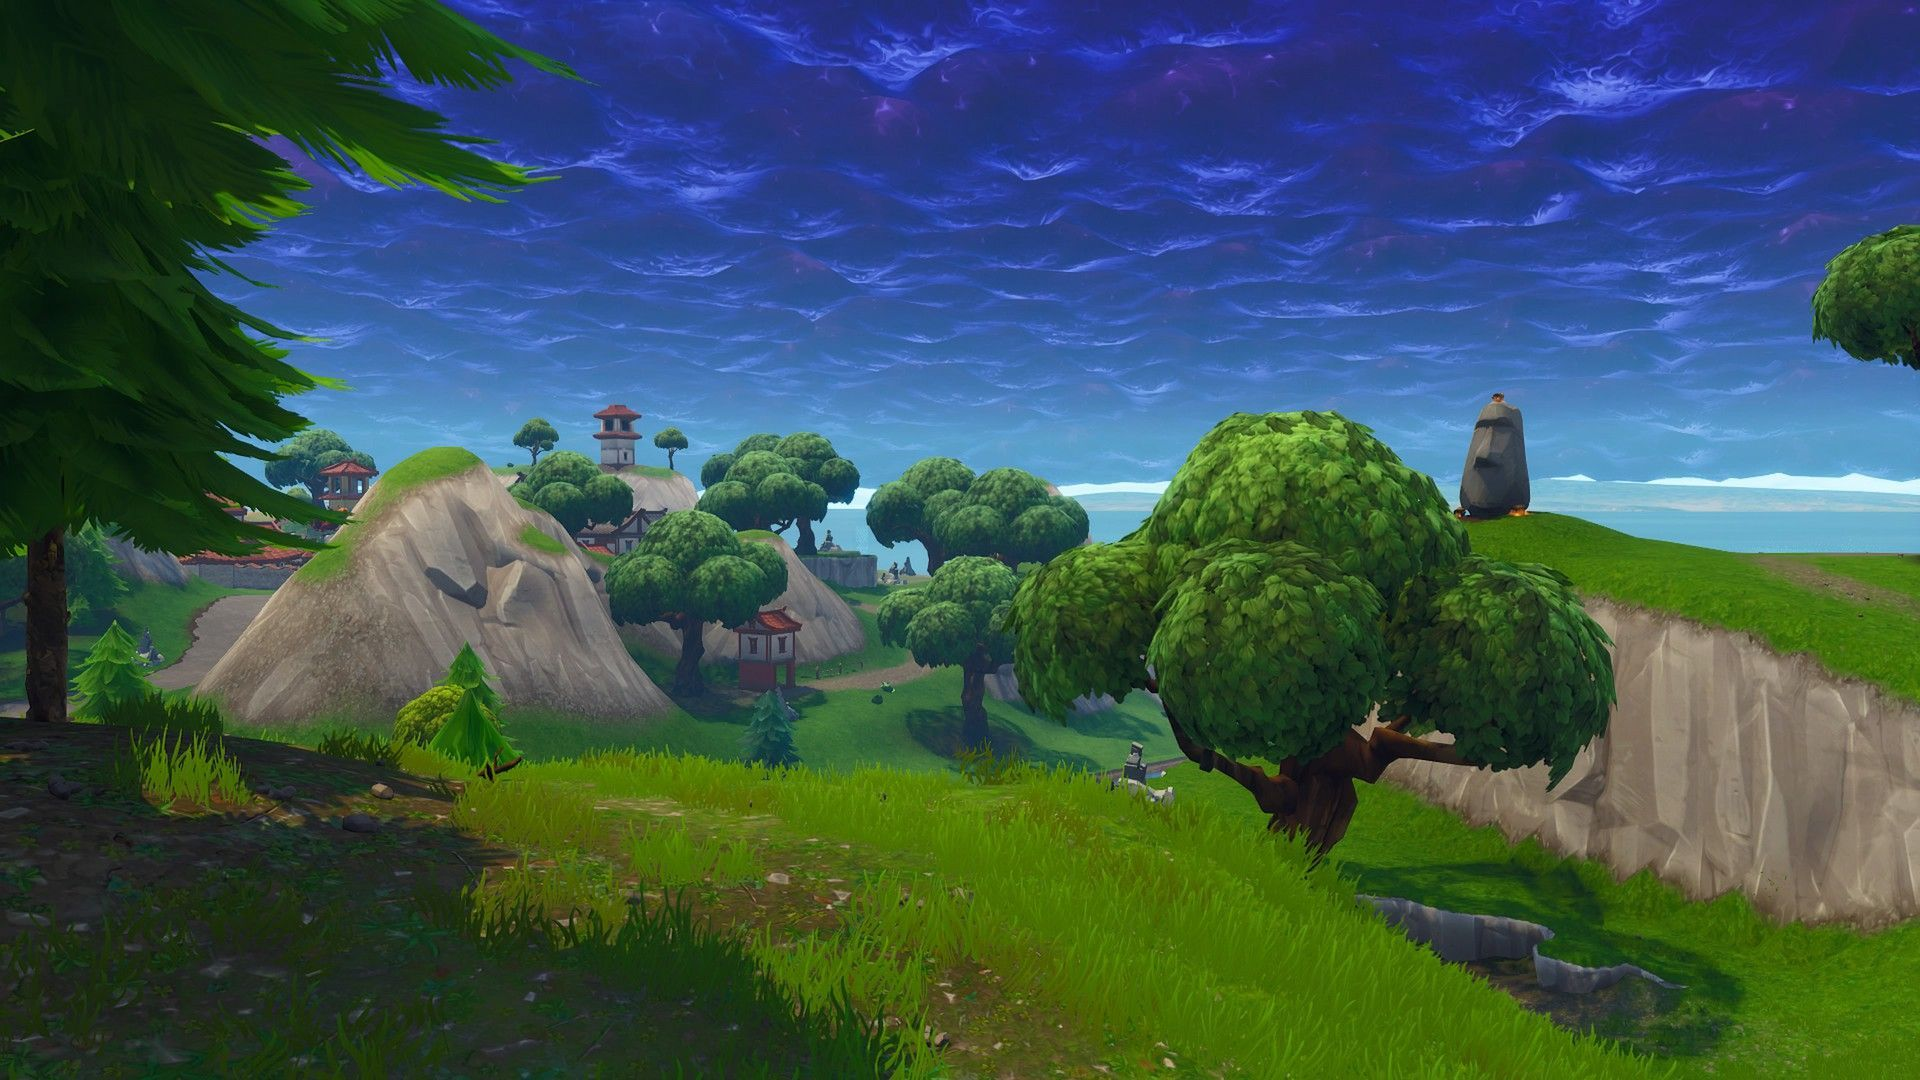 Fortnite Scenery Wallpapers Top Free Fortnite Scenery Backgrounds Wallpaperaccess